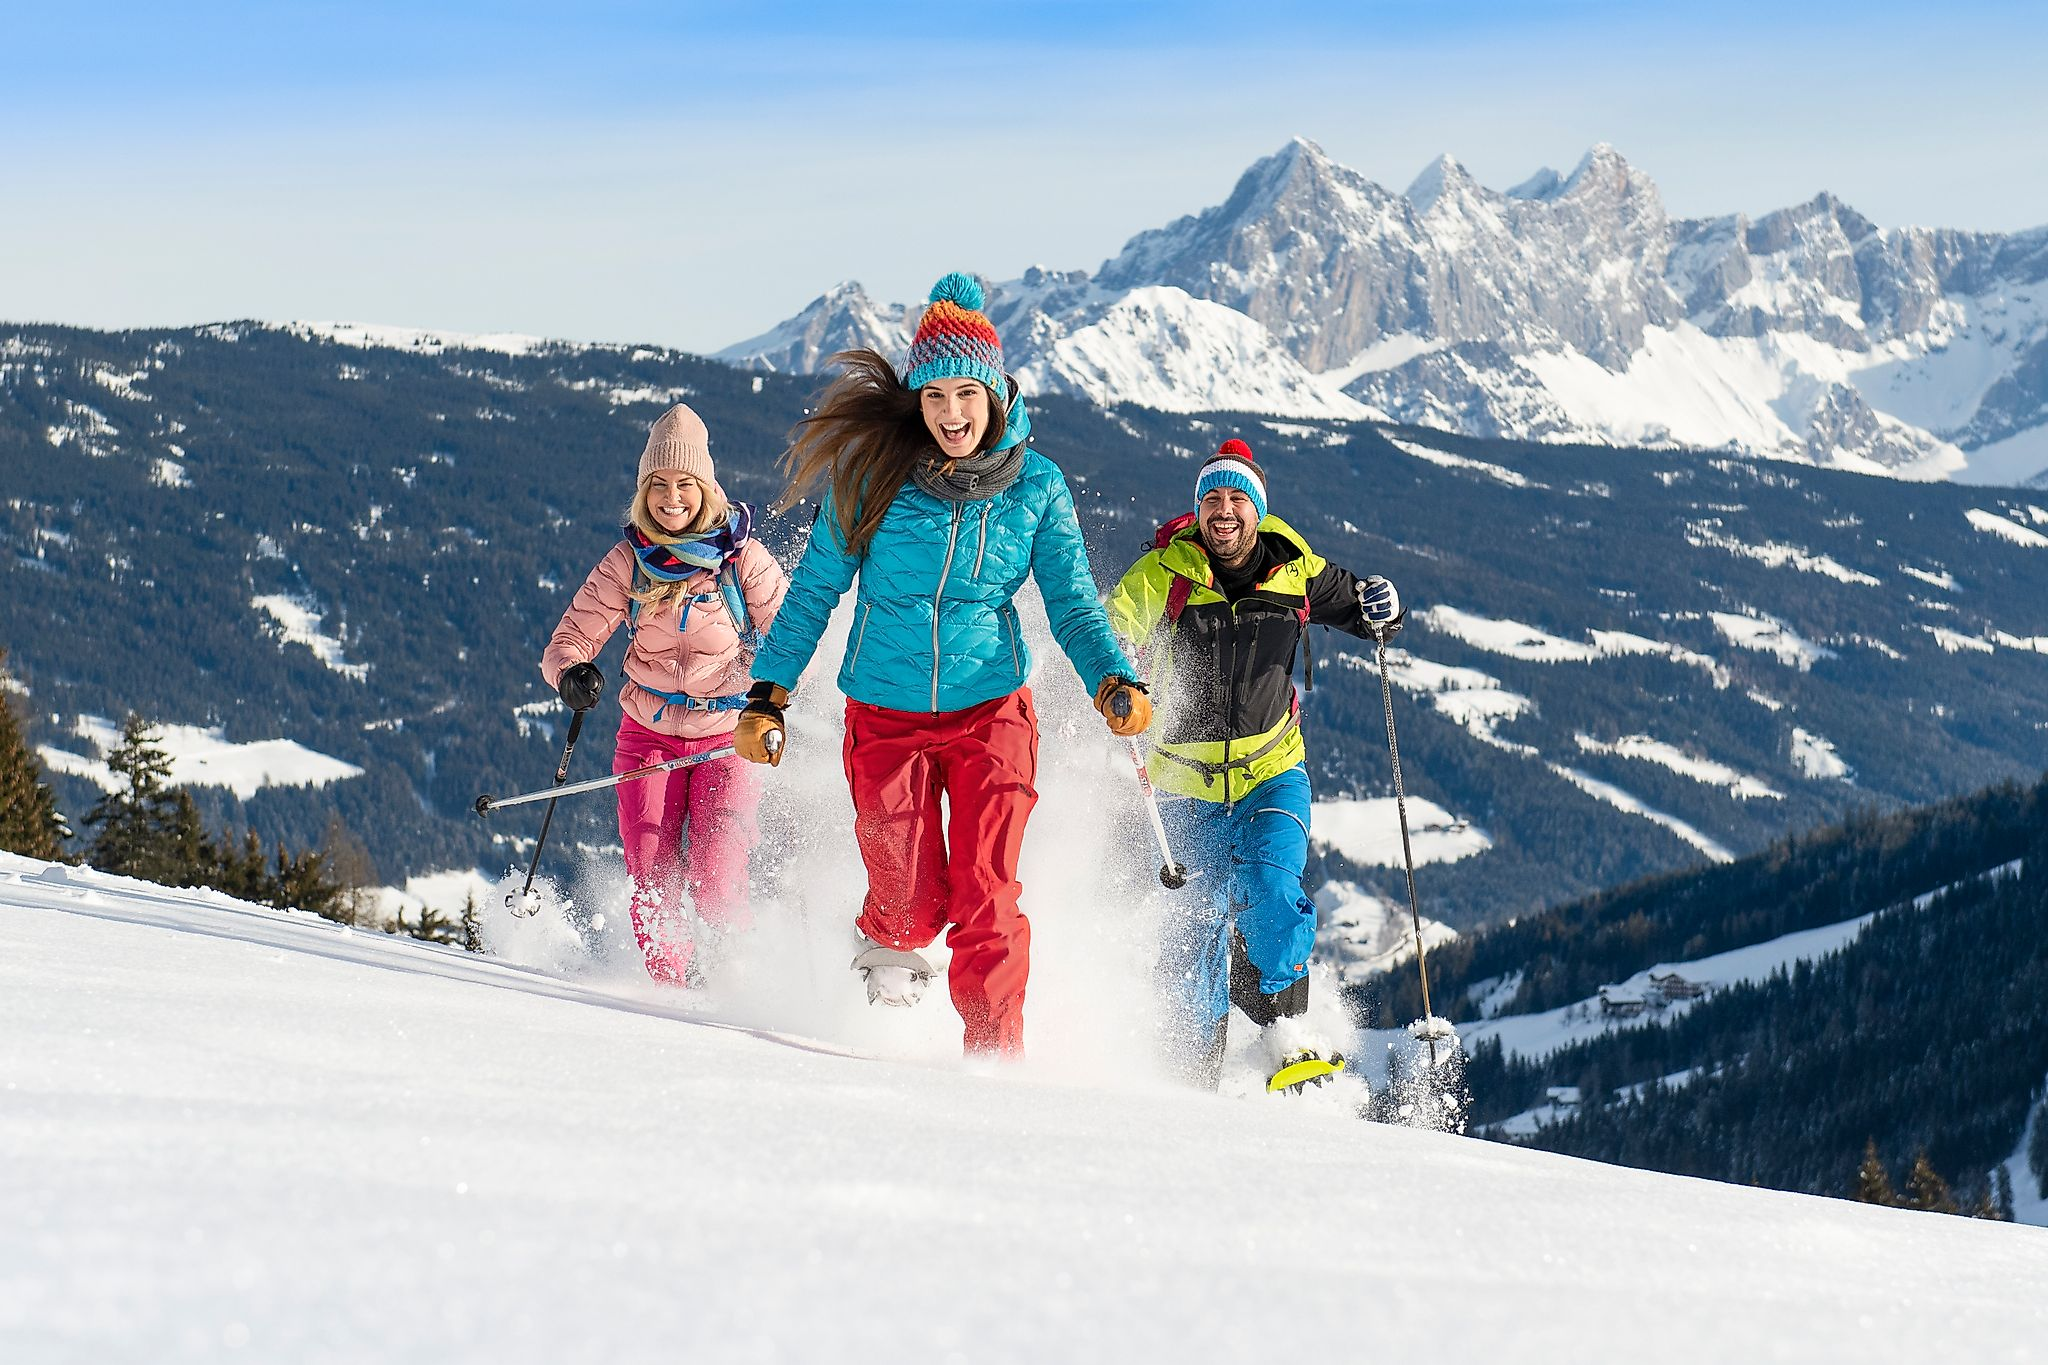 <p>A lot of fun walking with snowshoes through the snow-covered winter landscape.</p>